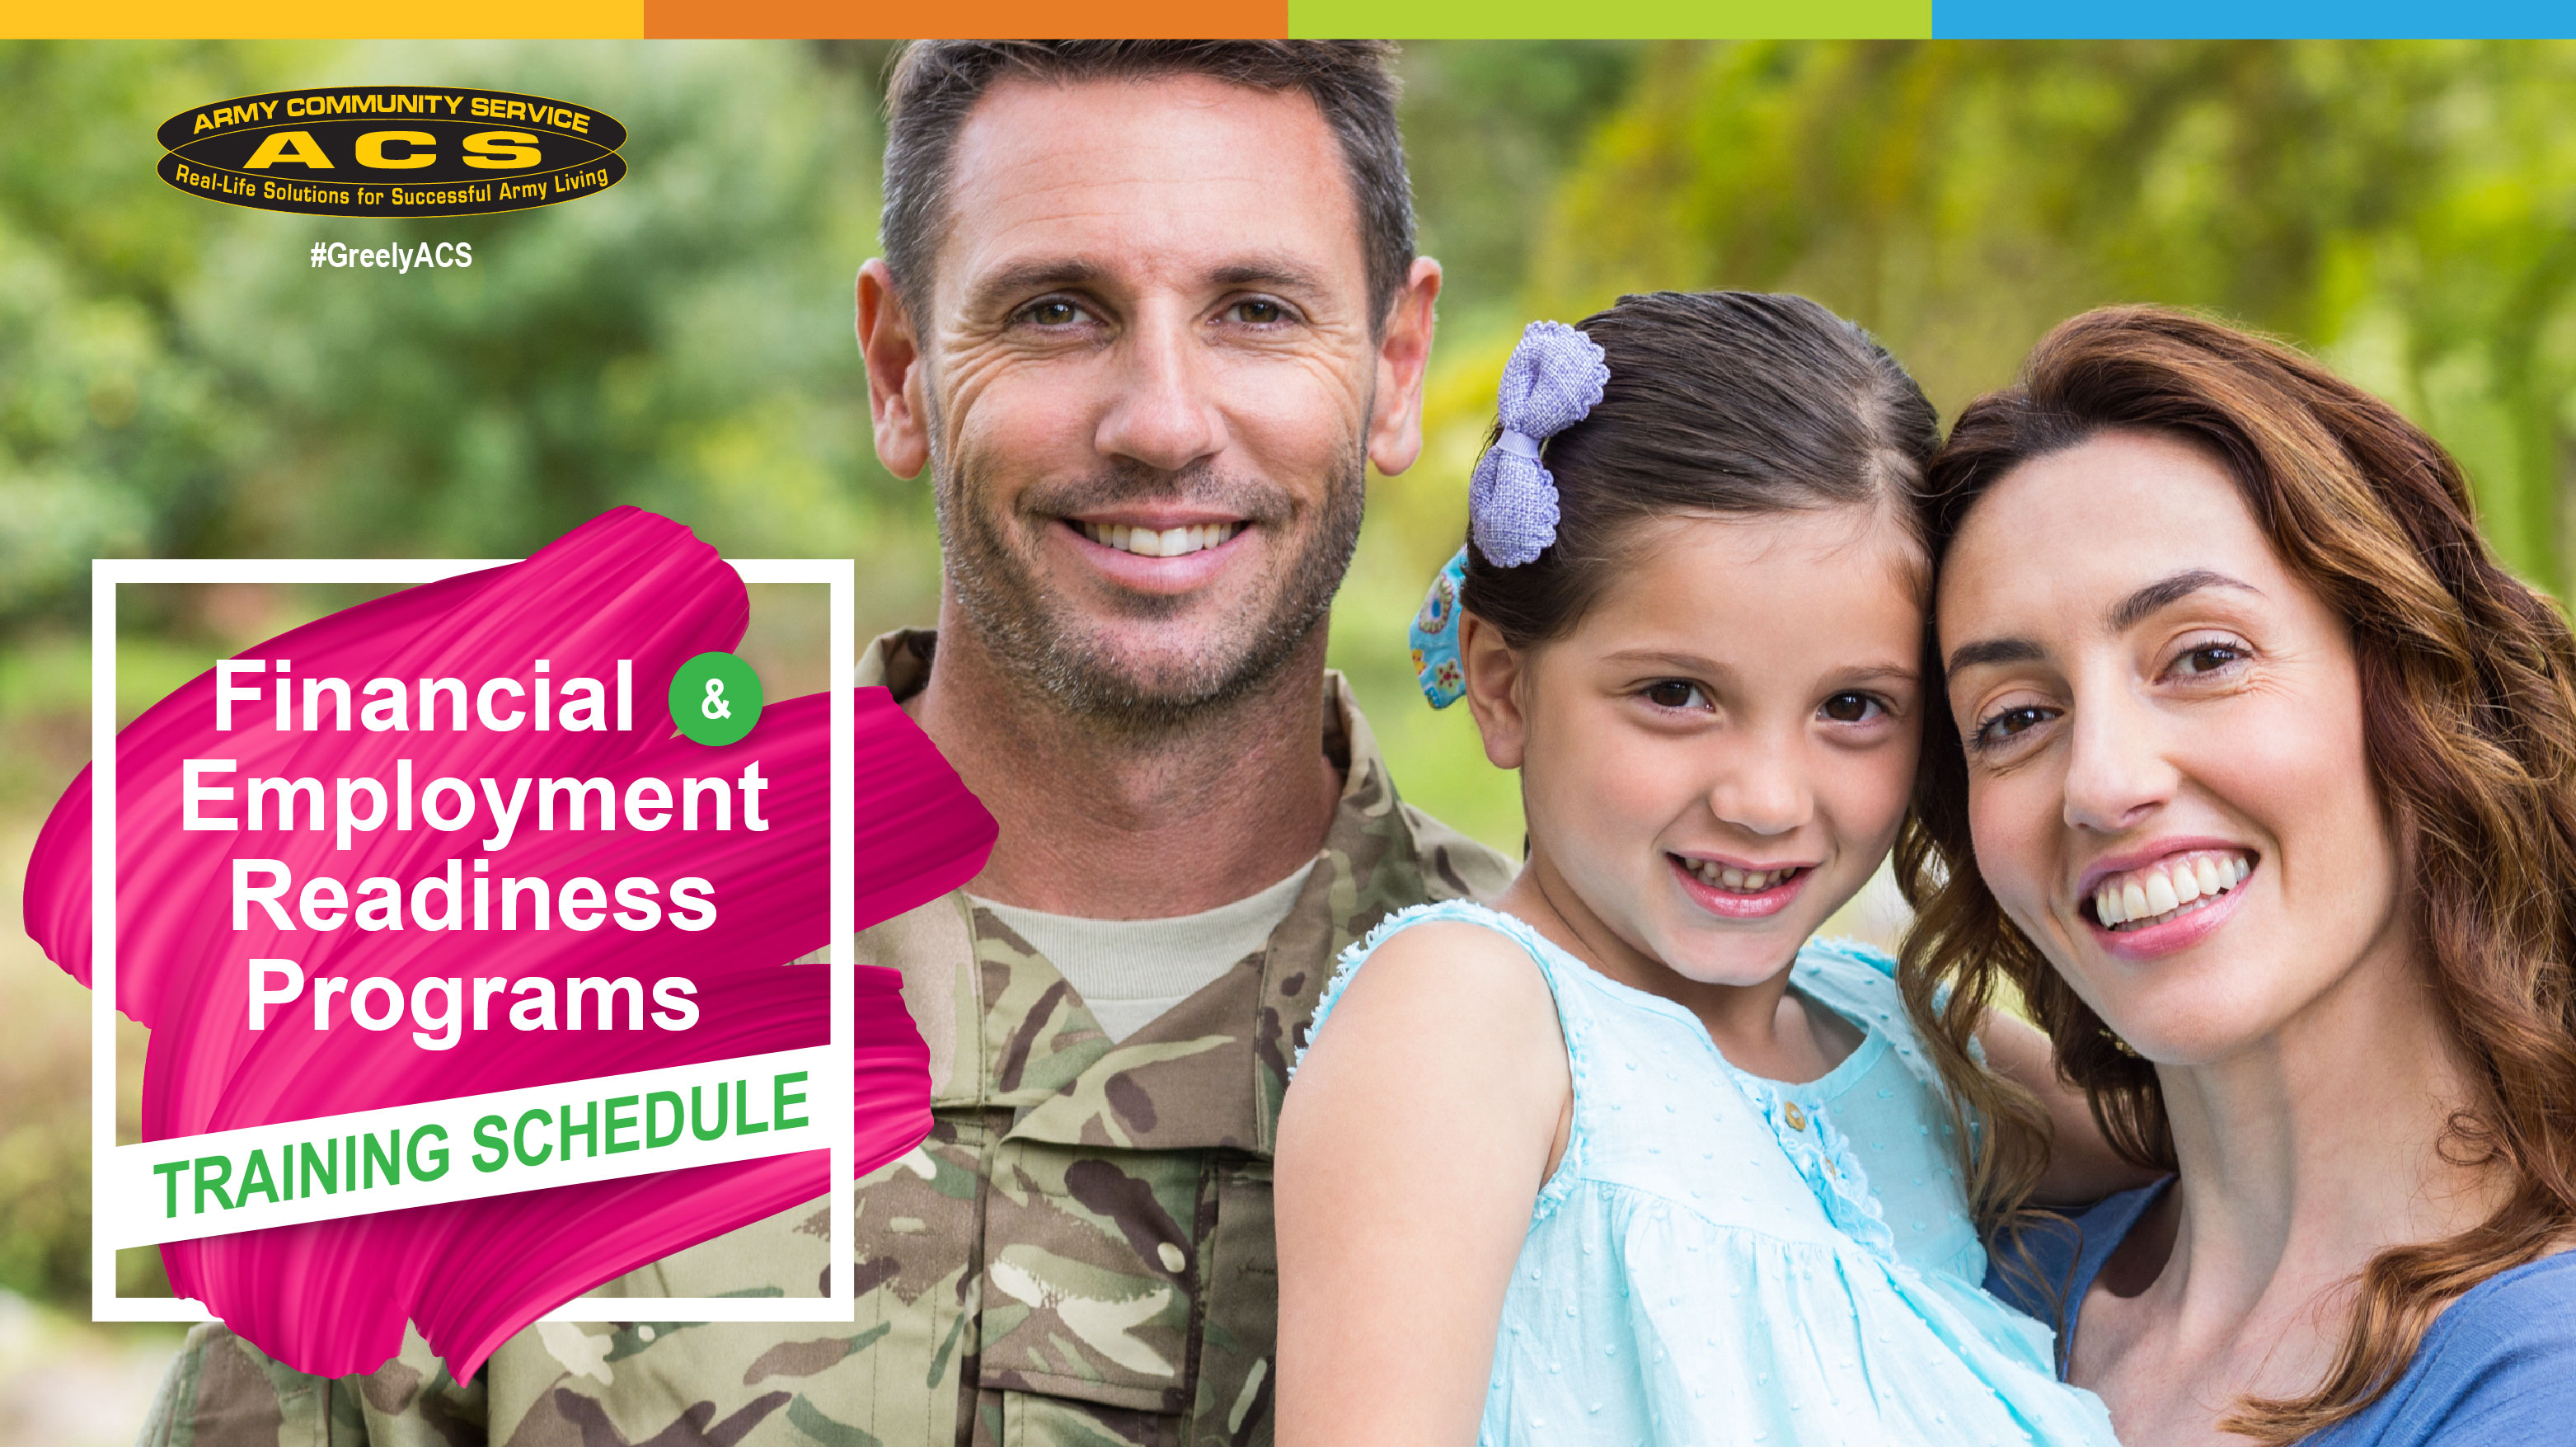 Financial & Employment Readiness Programs Training Schedule